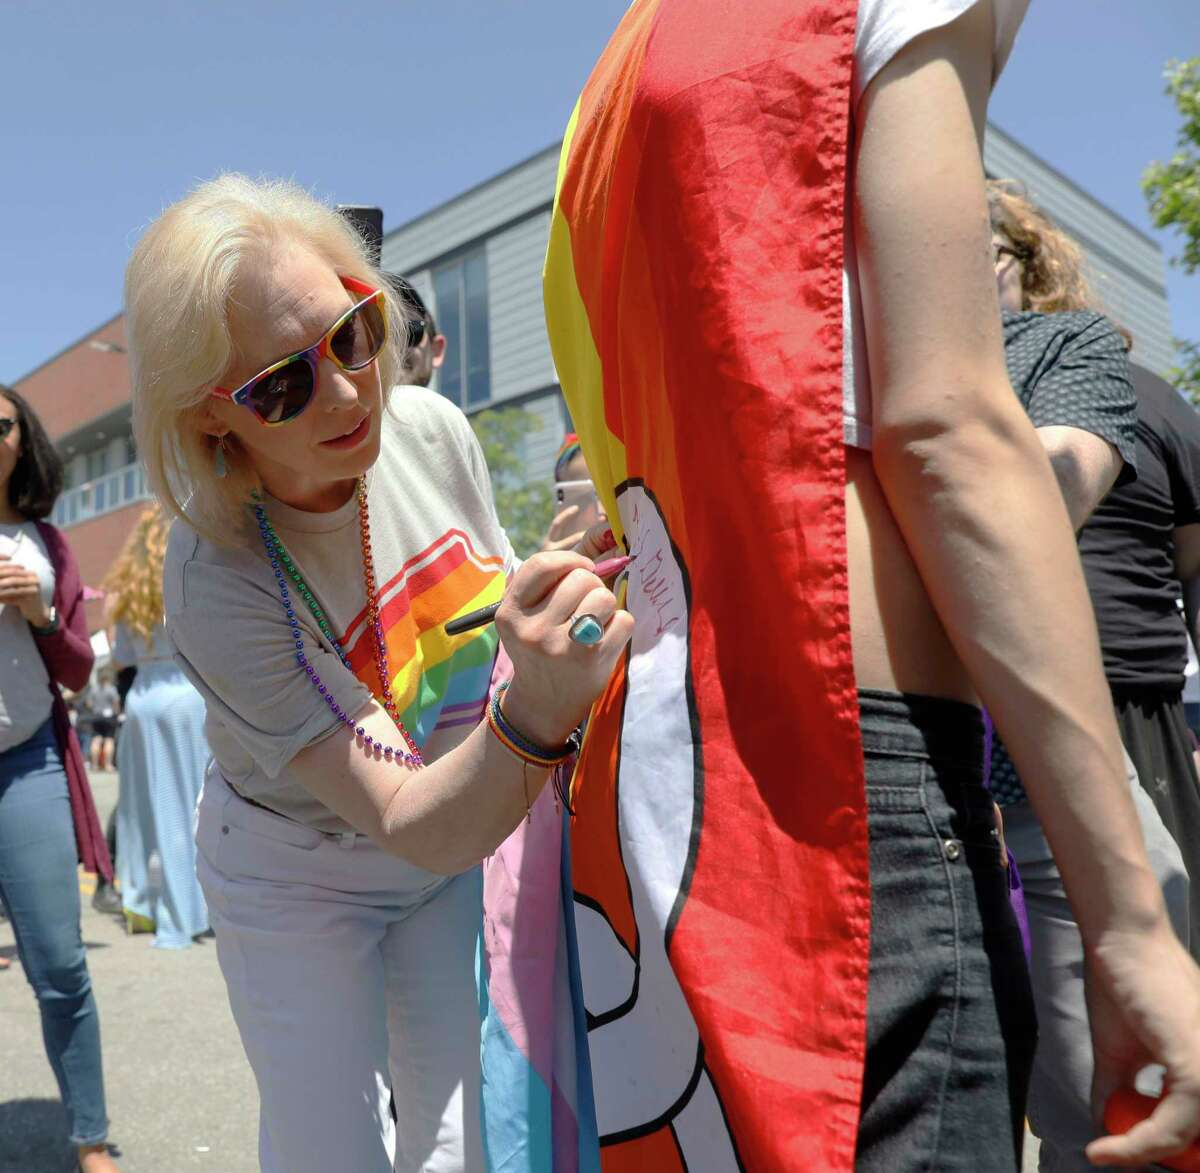 Democratic presidential candidate Kirsten Gillibrand signs an autograph during the Capital City Pride Fest, Saturday, June 8, 2019, in Des Moines, Iowa. (AP Photo/Charlie Neibergall)